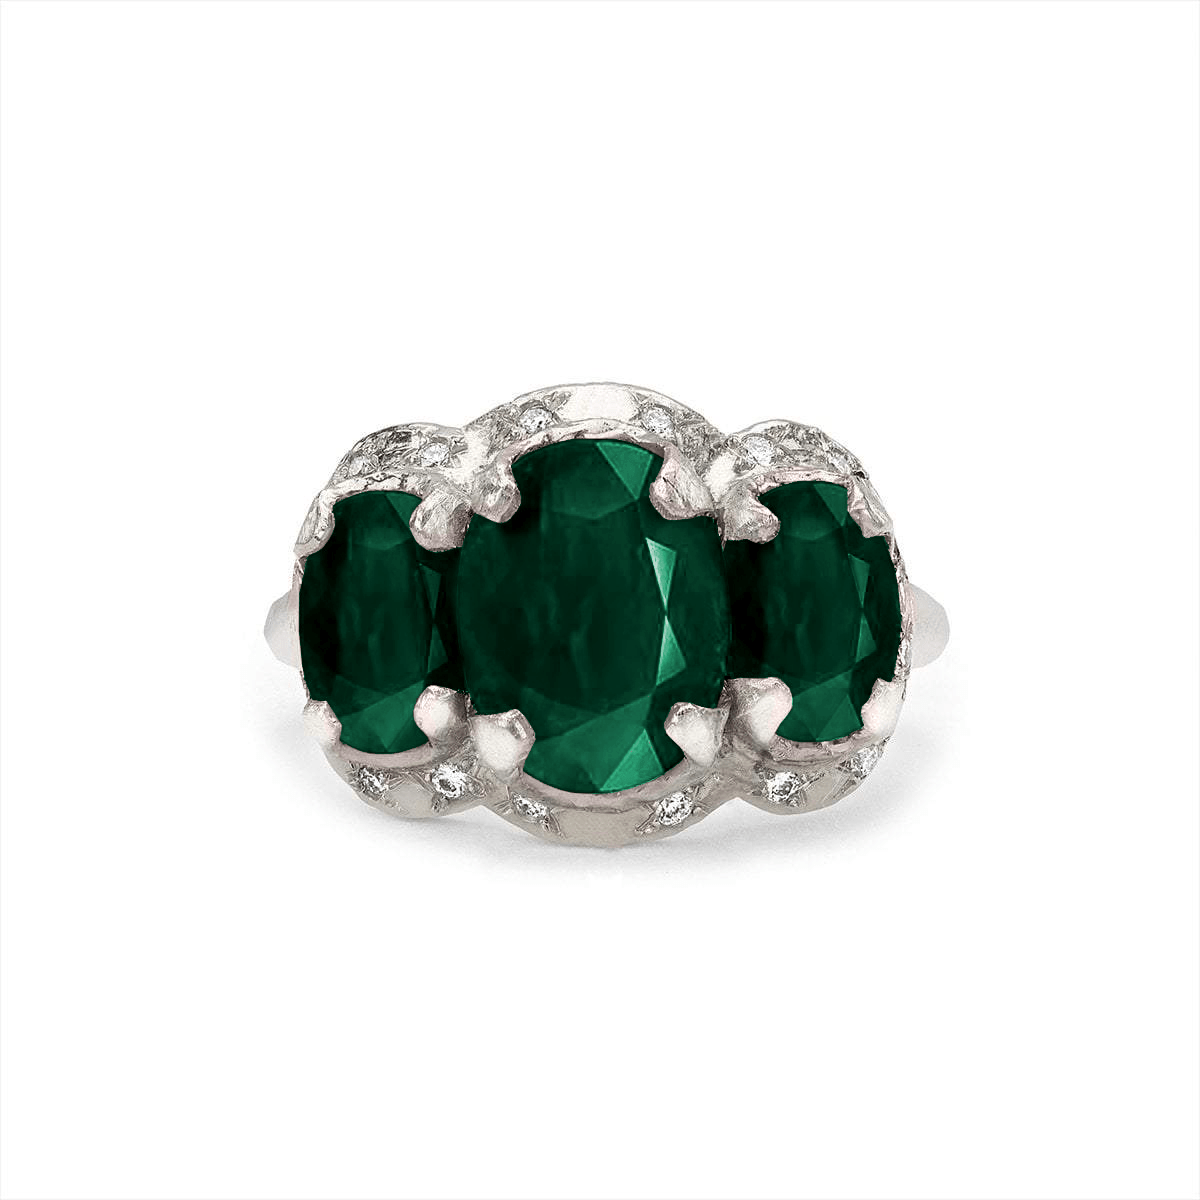 NEW! Queen Triple Goddess Emerald Ring with Sprinkled Diamonds